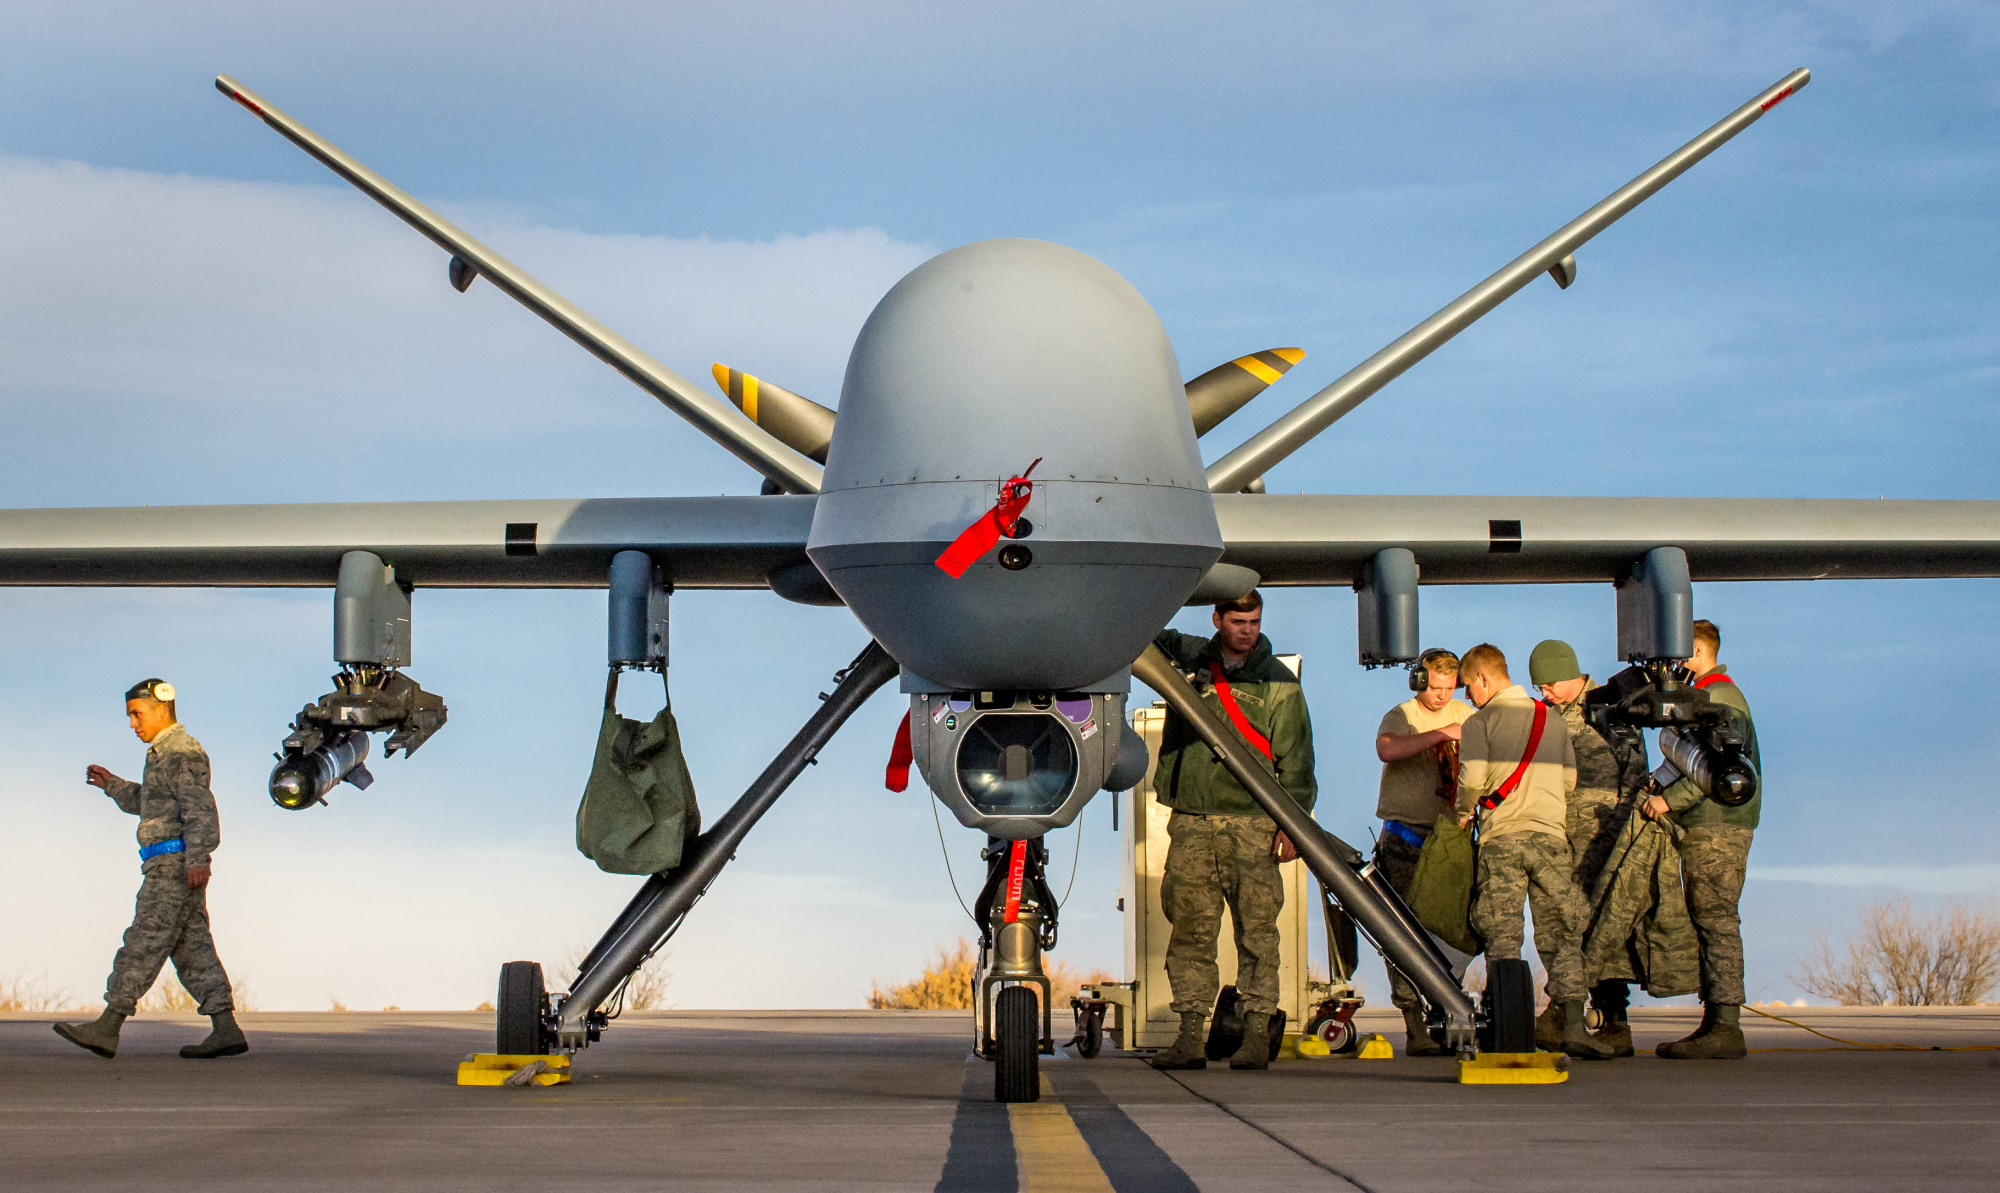 U.S. airmen perform a post-flight check of an MQ-9 Reaper drone at Holloman Air Force Base in New Mexico last December. | U.S. AIR FORCE